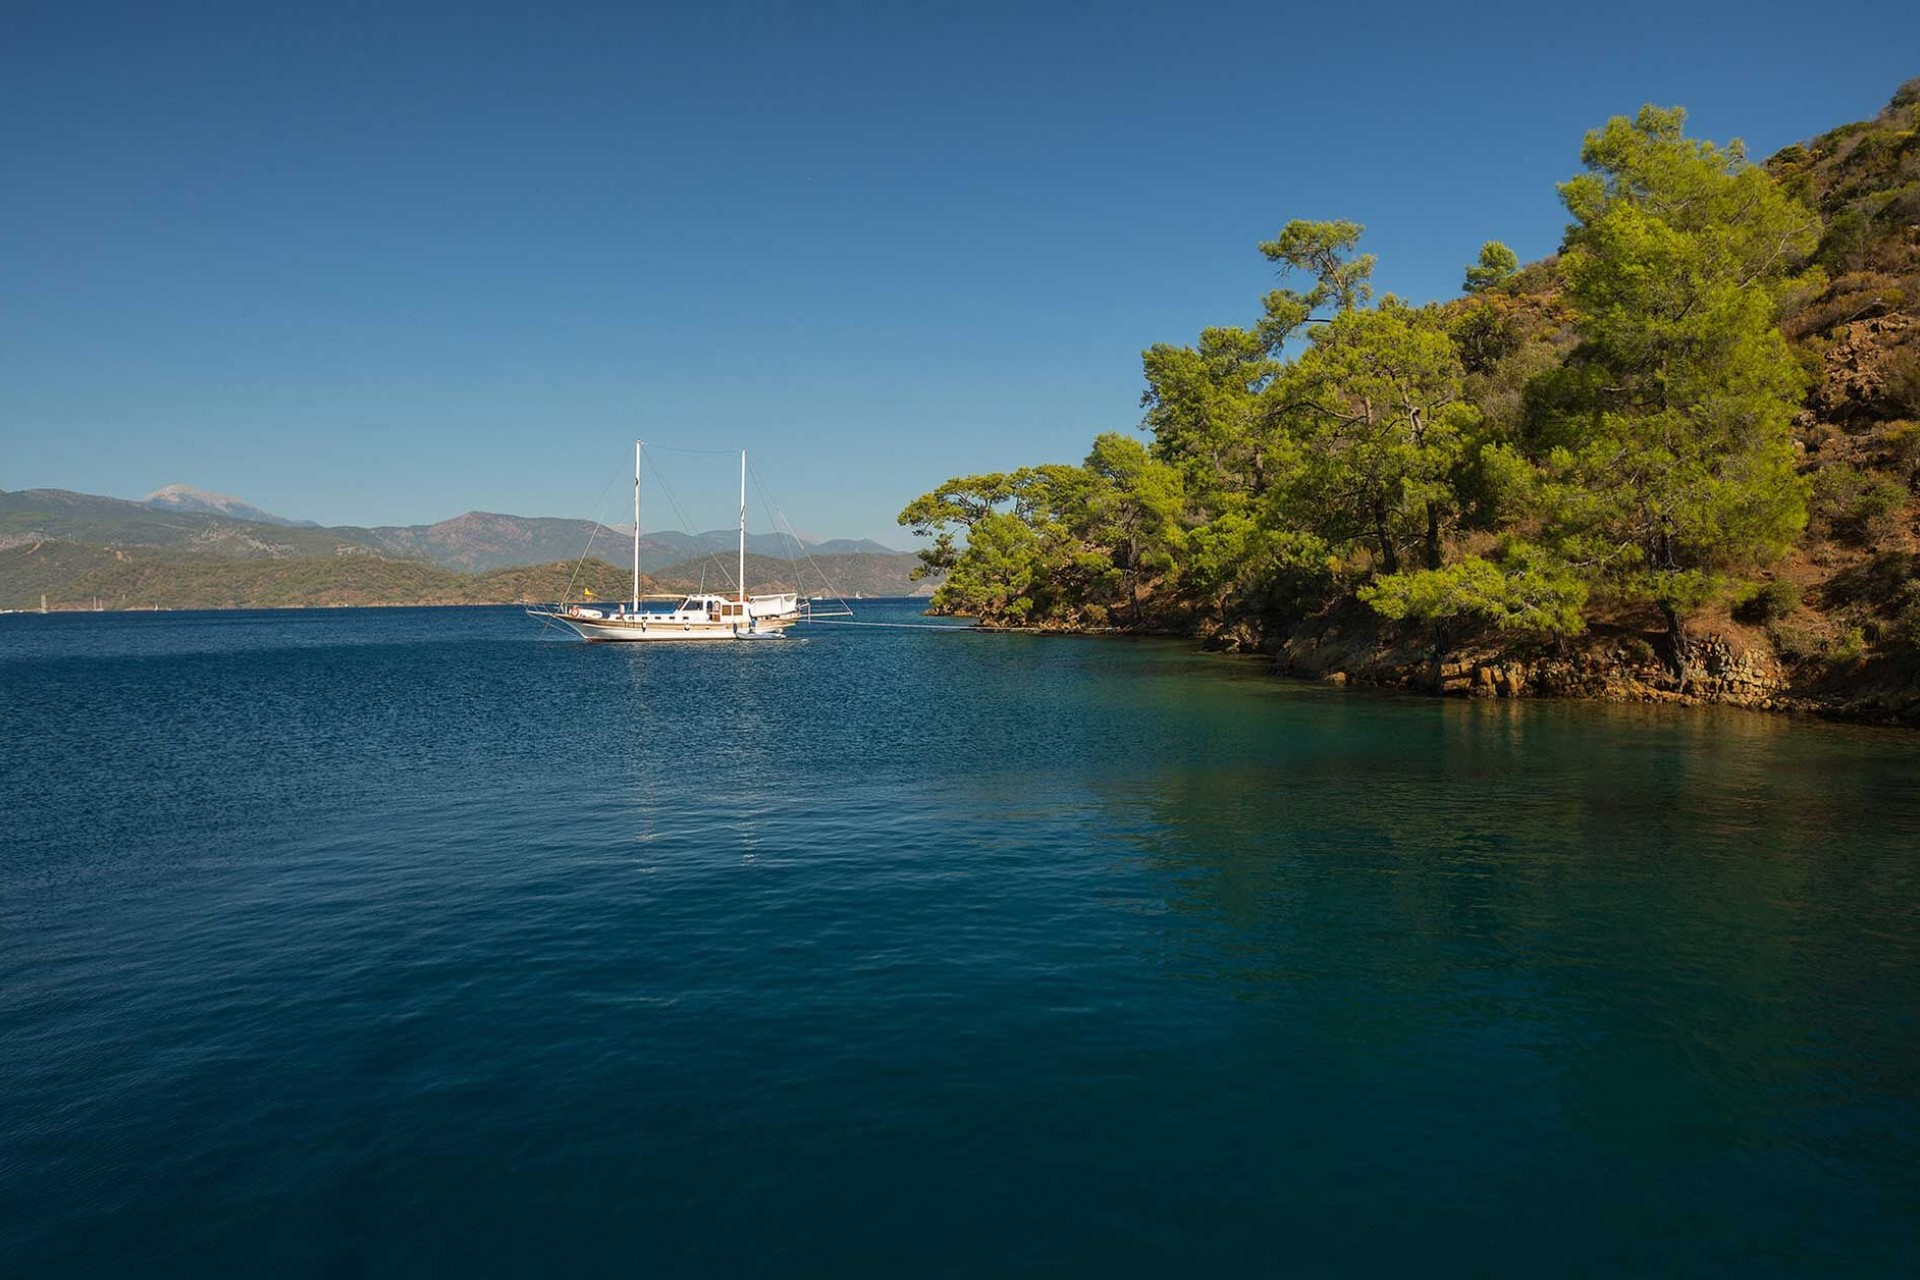 Bodrum Karacasogut Mini Cabin Tour - Blue Cruise,Light Tours Blue Cruise, Blue Cruise, Discount Tours 275